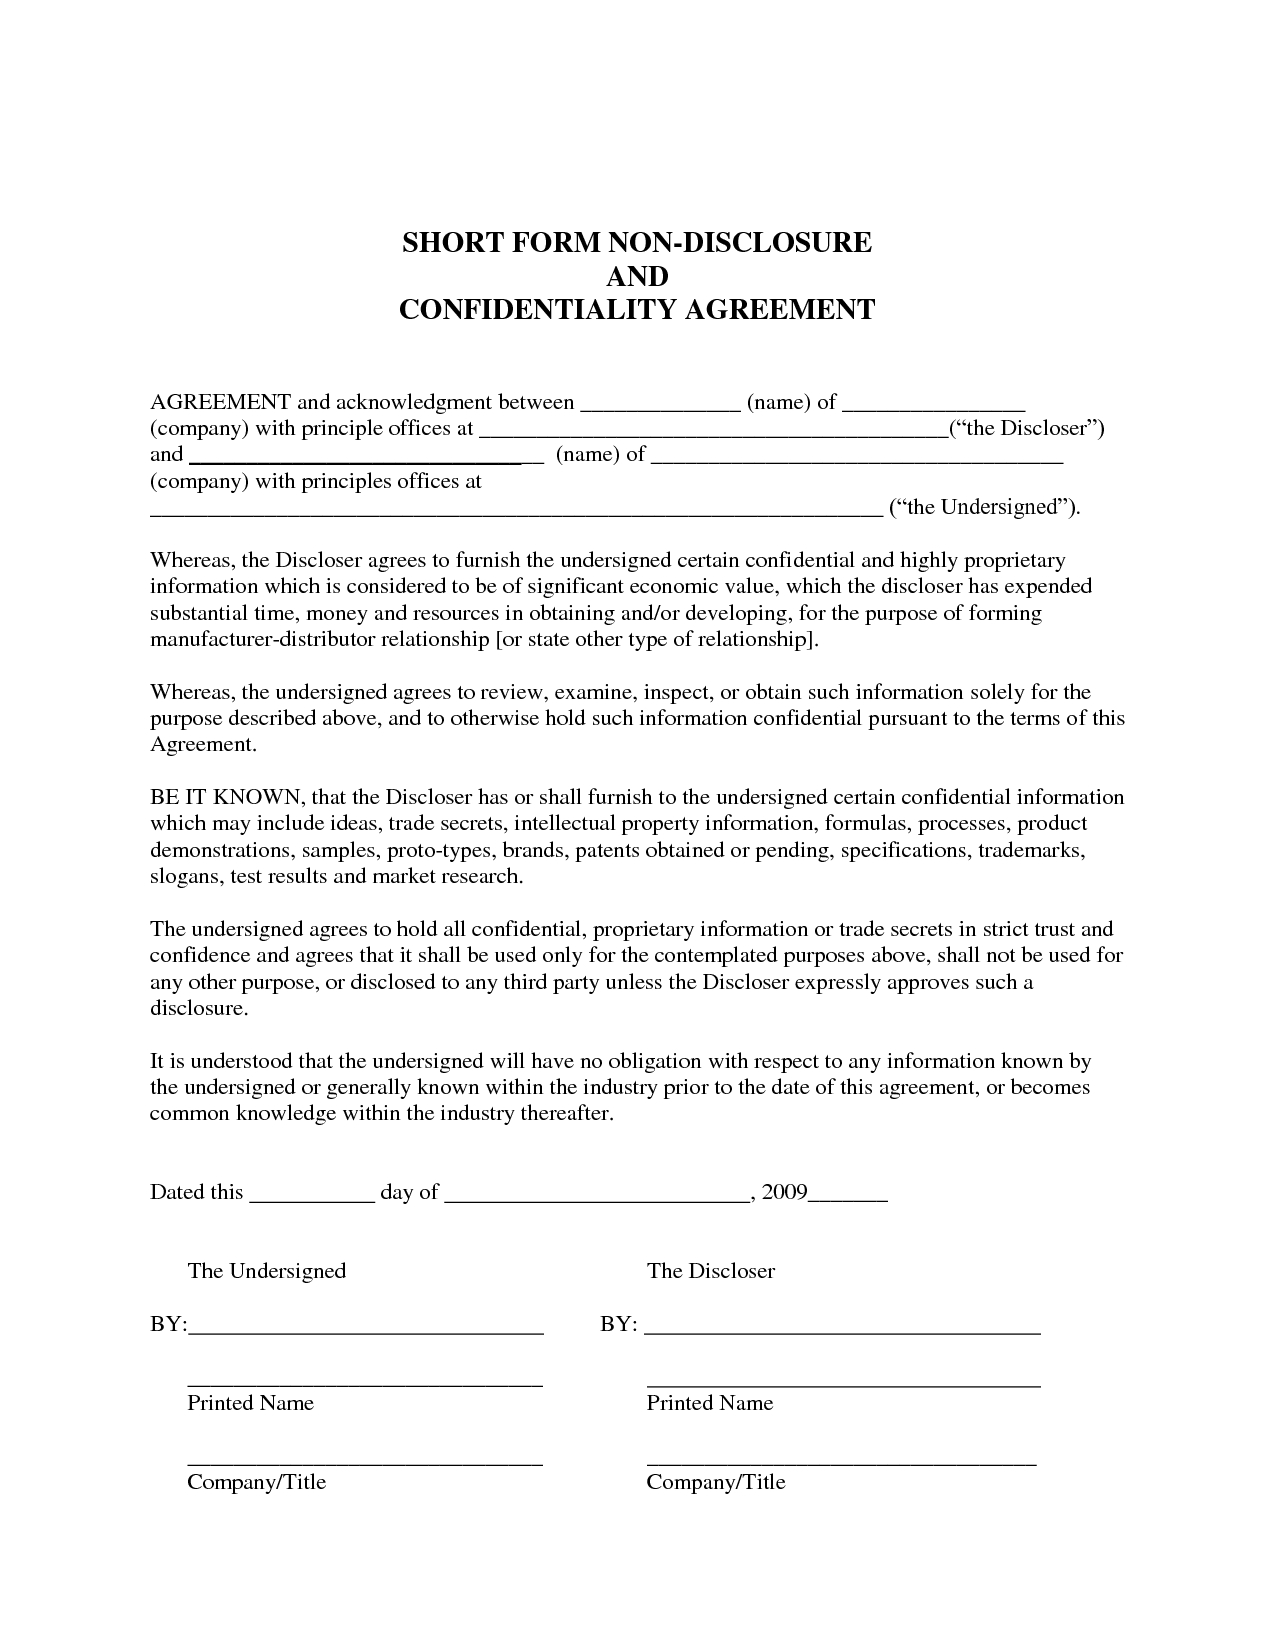 Sample Non-Disclosure Agreement | Confidentiality Agreement Sample - Free Printable Non Disclosure Agreement Form